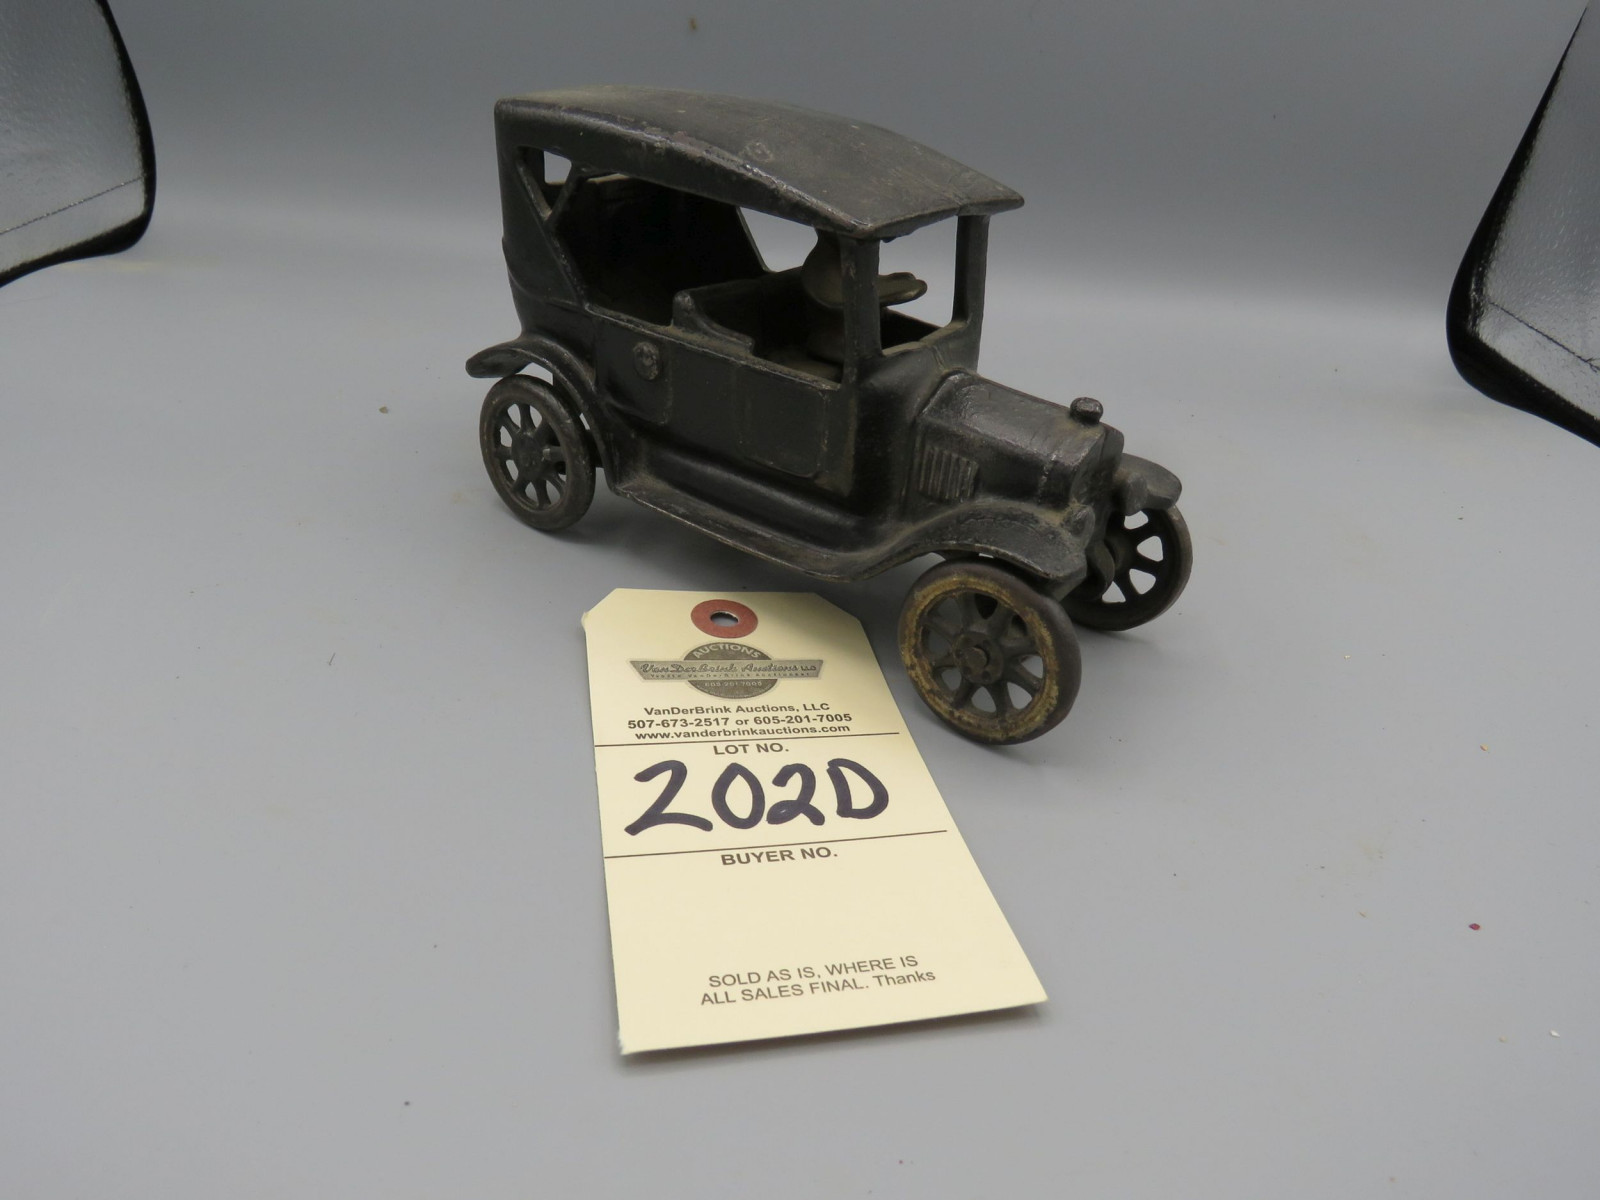 Arcade Cast Iron Chevrolet Superior Touring Car @1925 Approx. 7 inches - Image 2